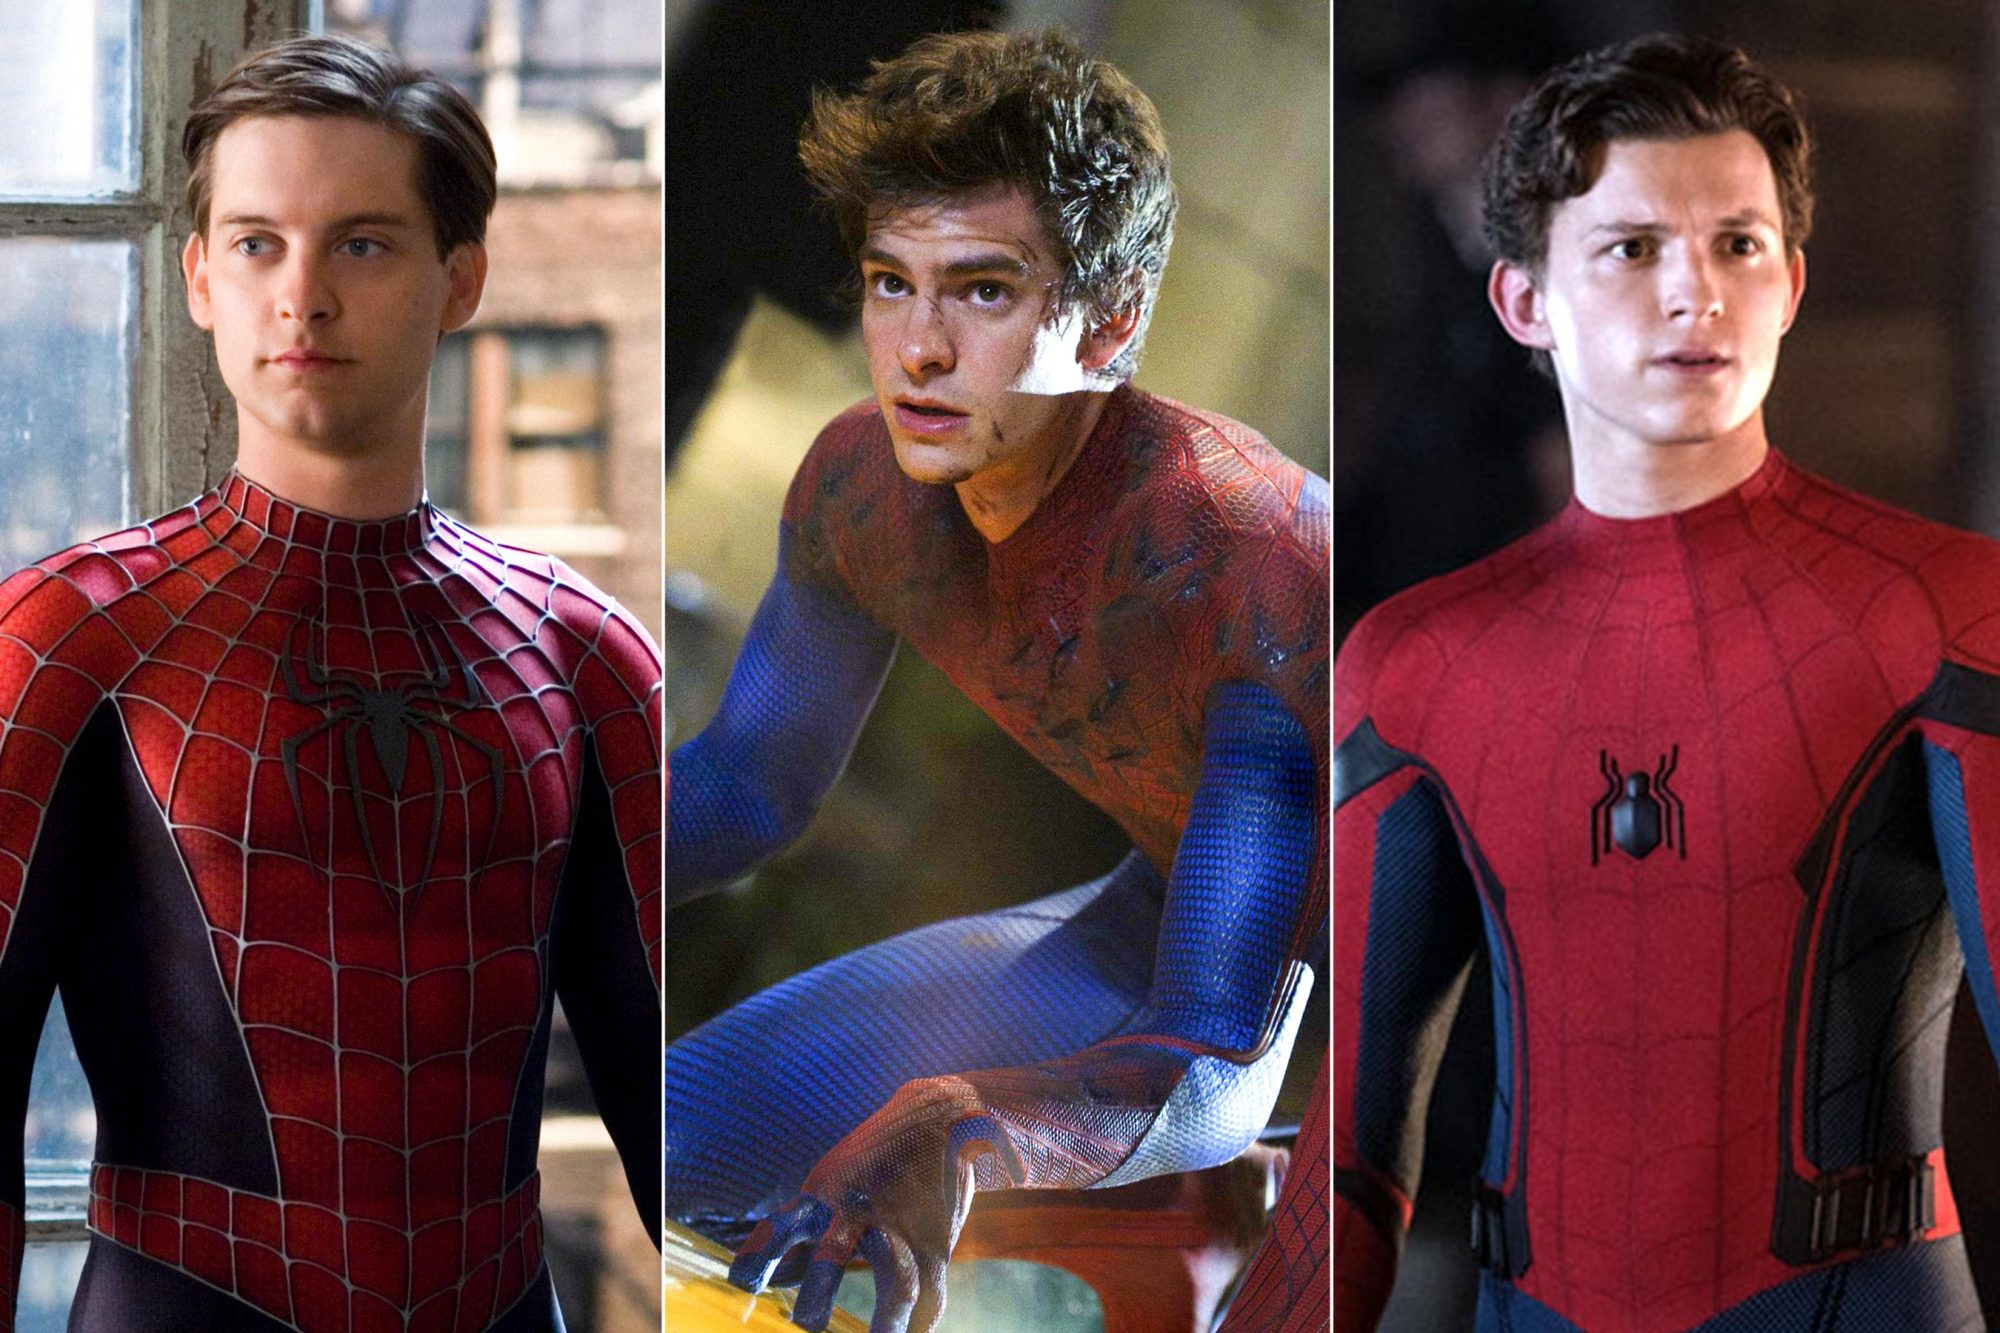 Spider-Man 3 (2007) Tobey Maguire The Amazing Spider-Man (2012) Andrew Garfield as Spider-Man / Peter Parker Tom Holland is Spider-Man in Columbia Pictures' SPIDER-MAN: ™ FAR FROM HOME.